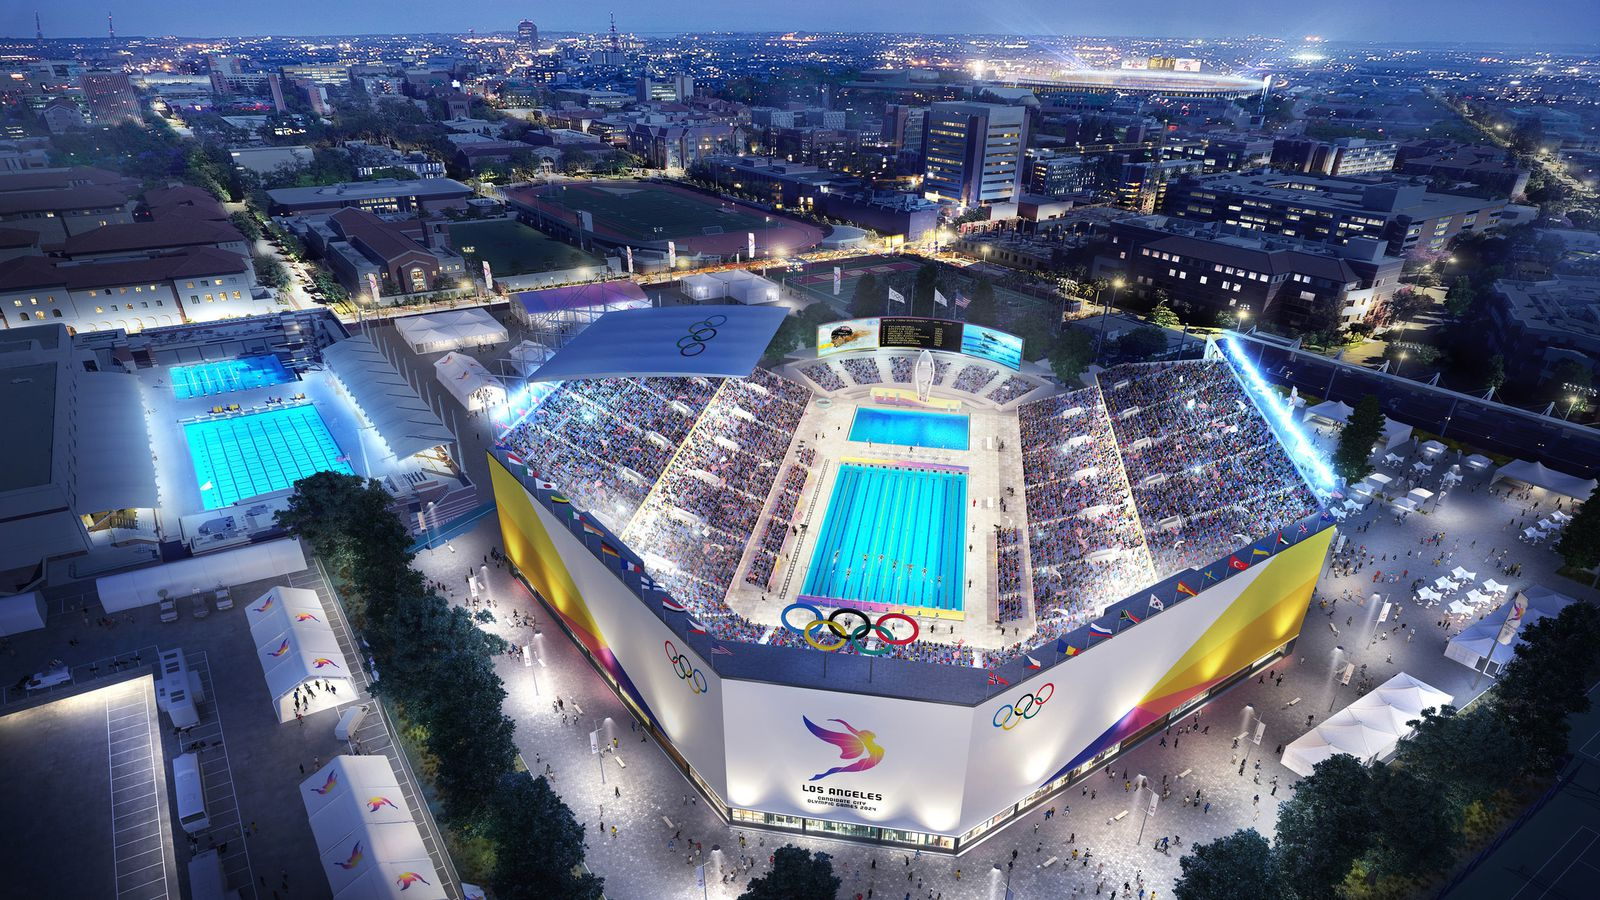 Mapped: The future sites of LA's 2028 Olympic games - Curbed LA